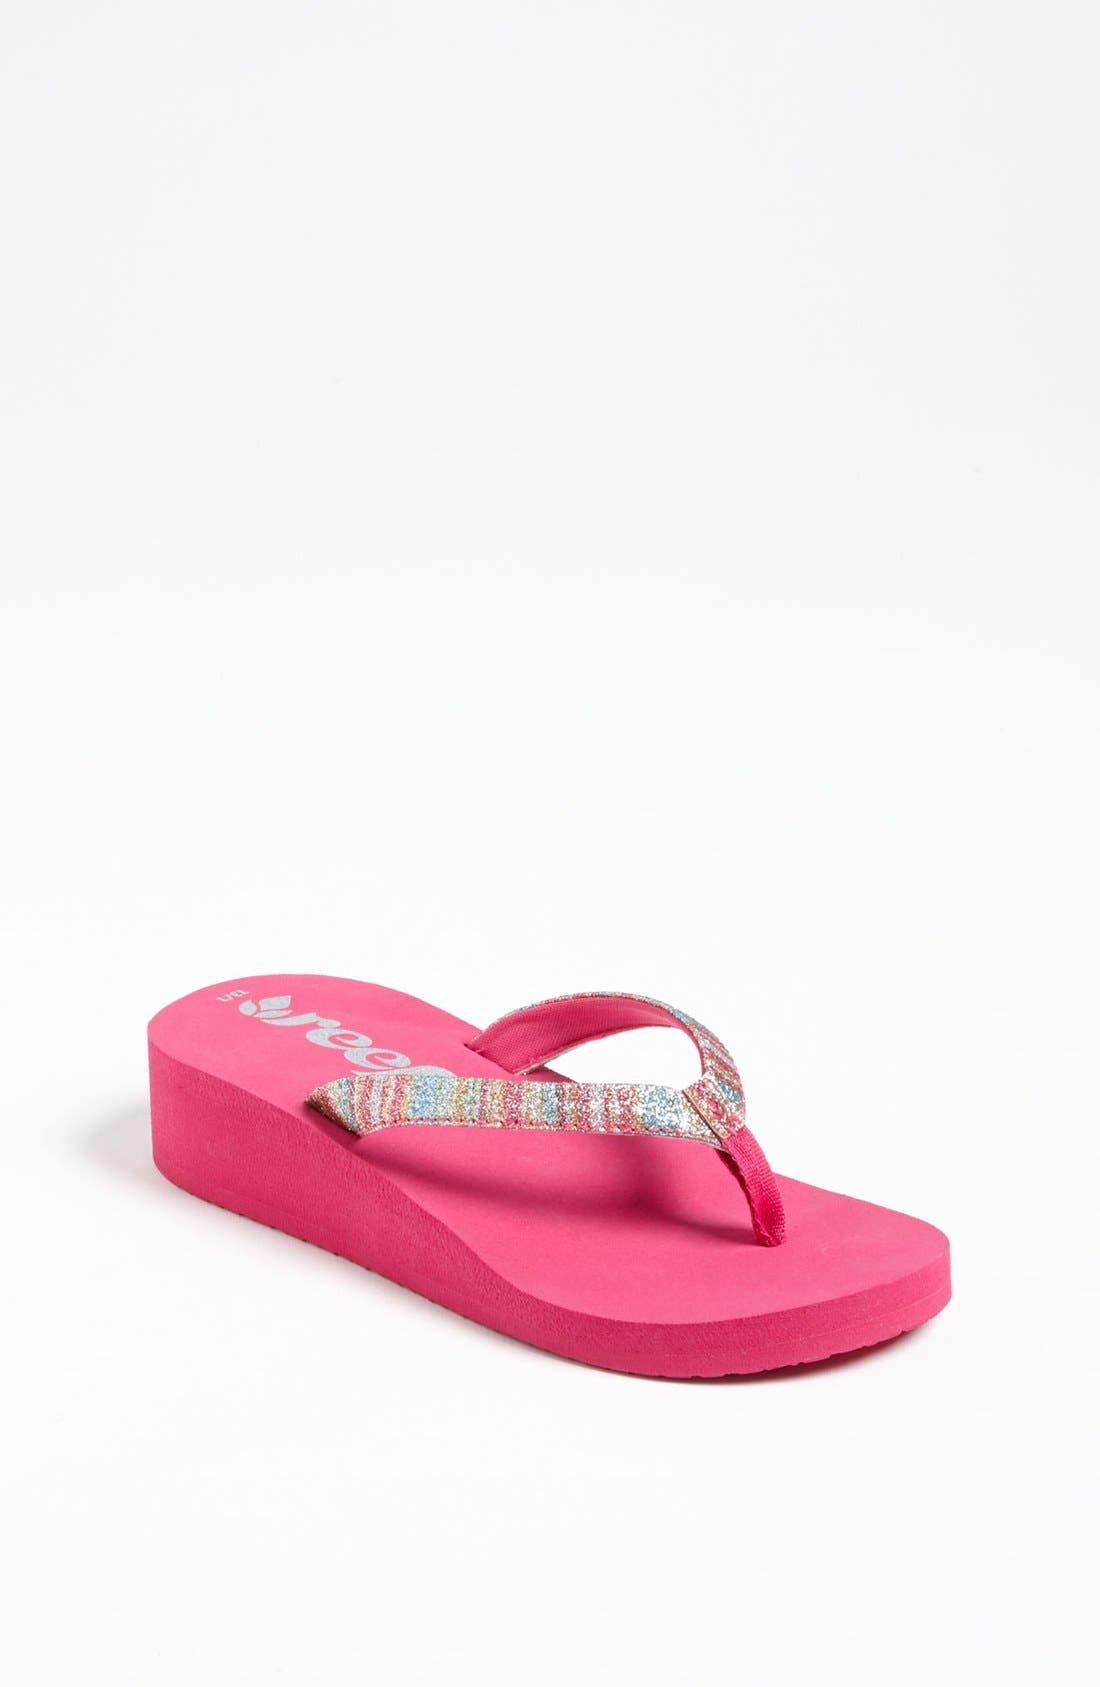 Alternate Image 1 Selected - REEF LITTLE KRYSTAL STAR LUXE SANDAL